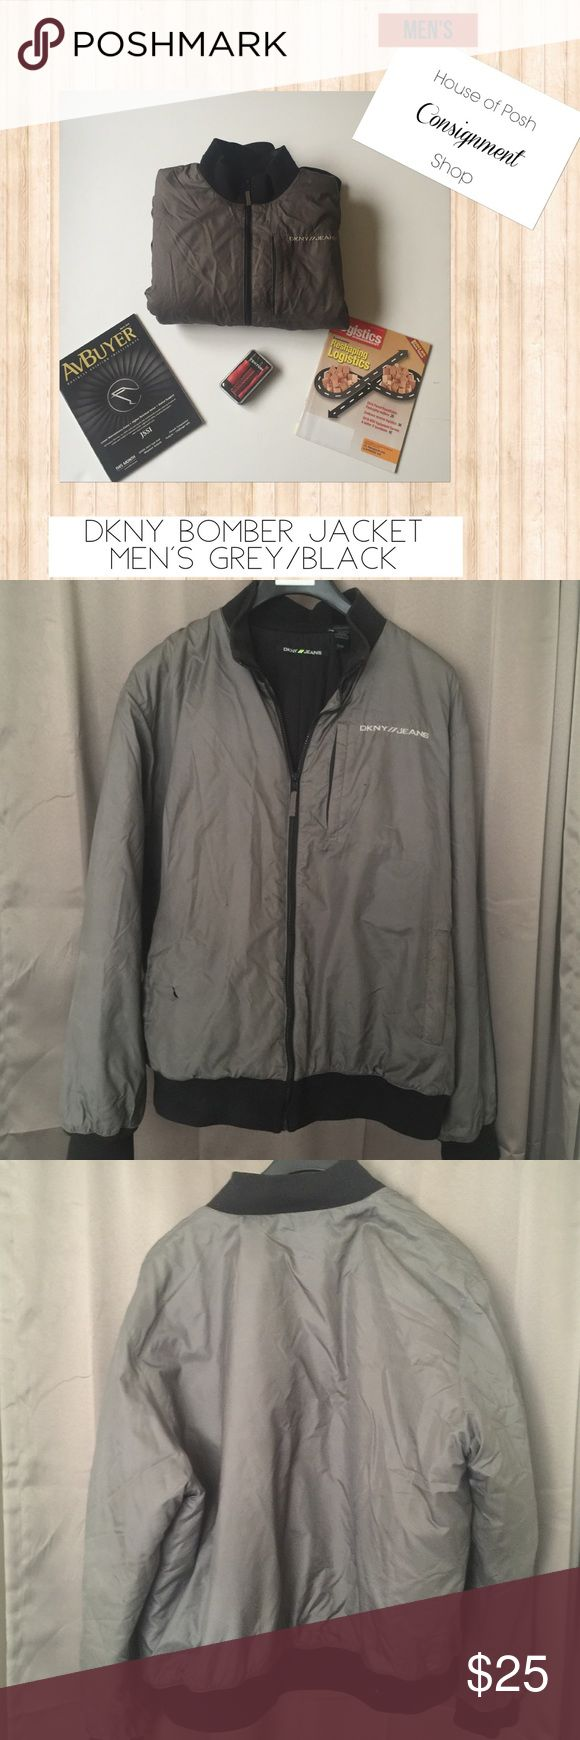 Dkny Puffer Bomber Grey/Black Men's Normal wear. Small blemish on right lower front side. See pic 4. Light dirt from storage. Price will reflect condition. DKNY Jackets & Coats Puffers